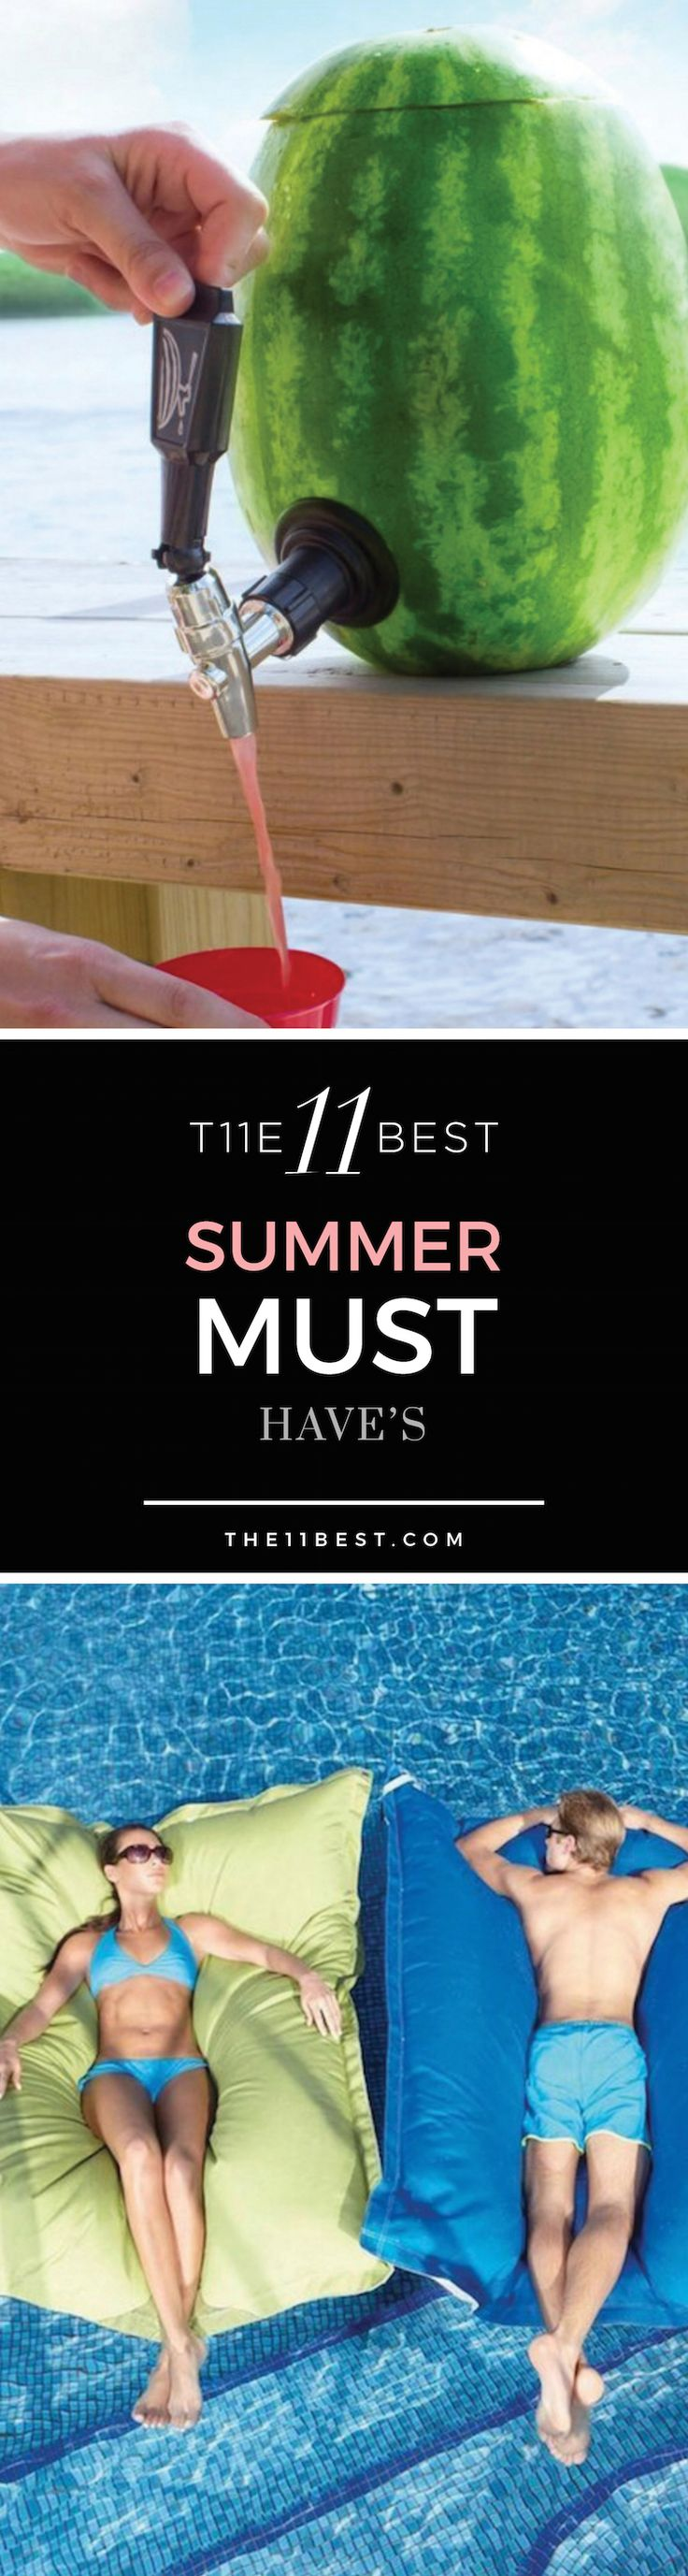 Summer Must Have's. The best outdoor accessories, pool party rafts & chairs, and hot weather toys for the summer!